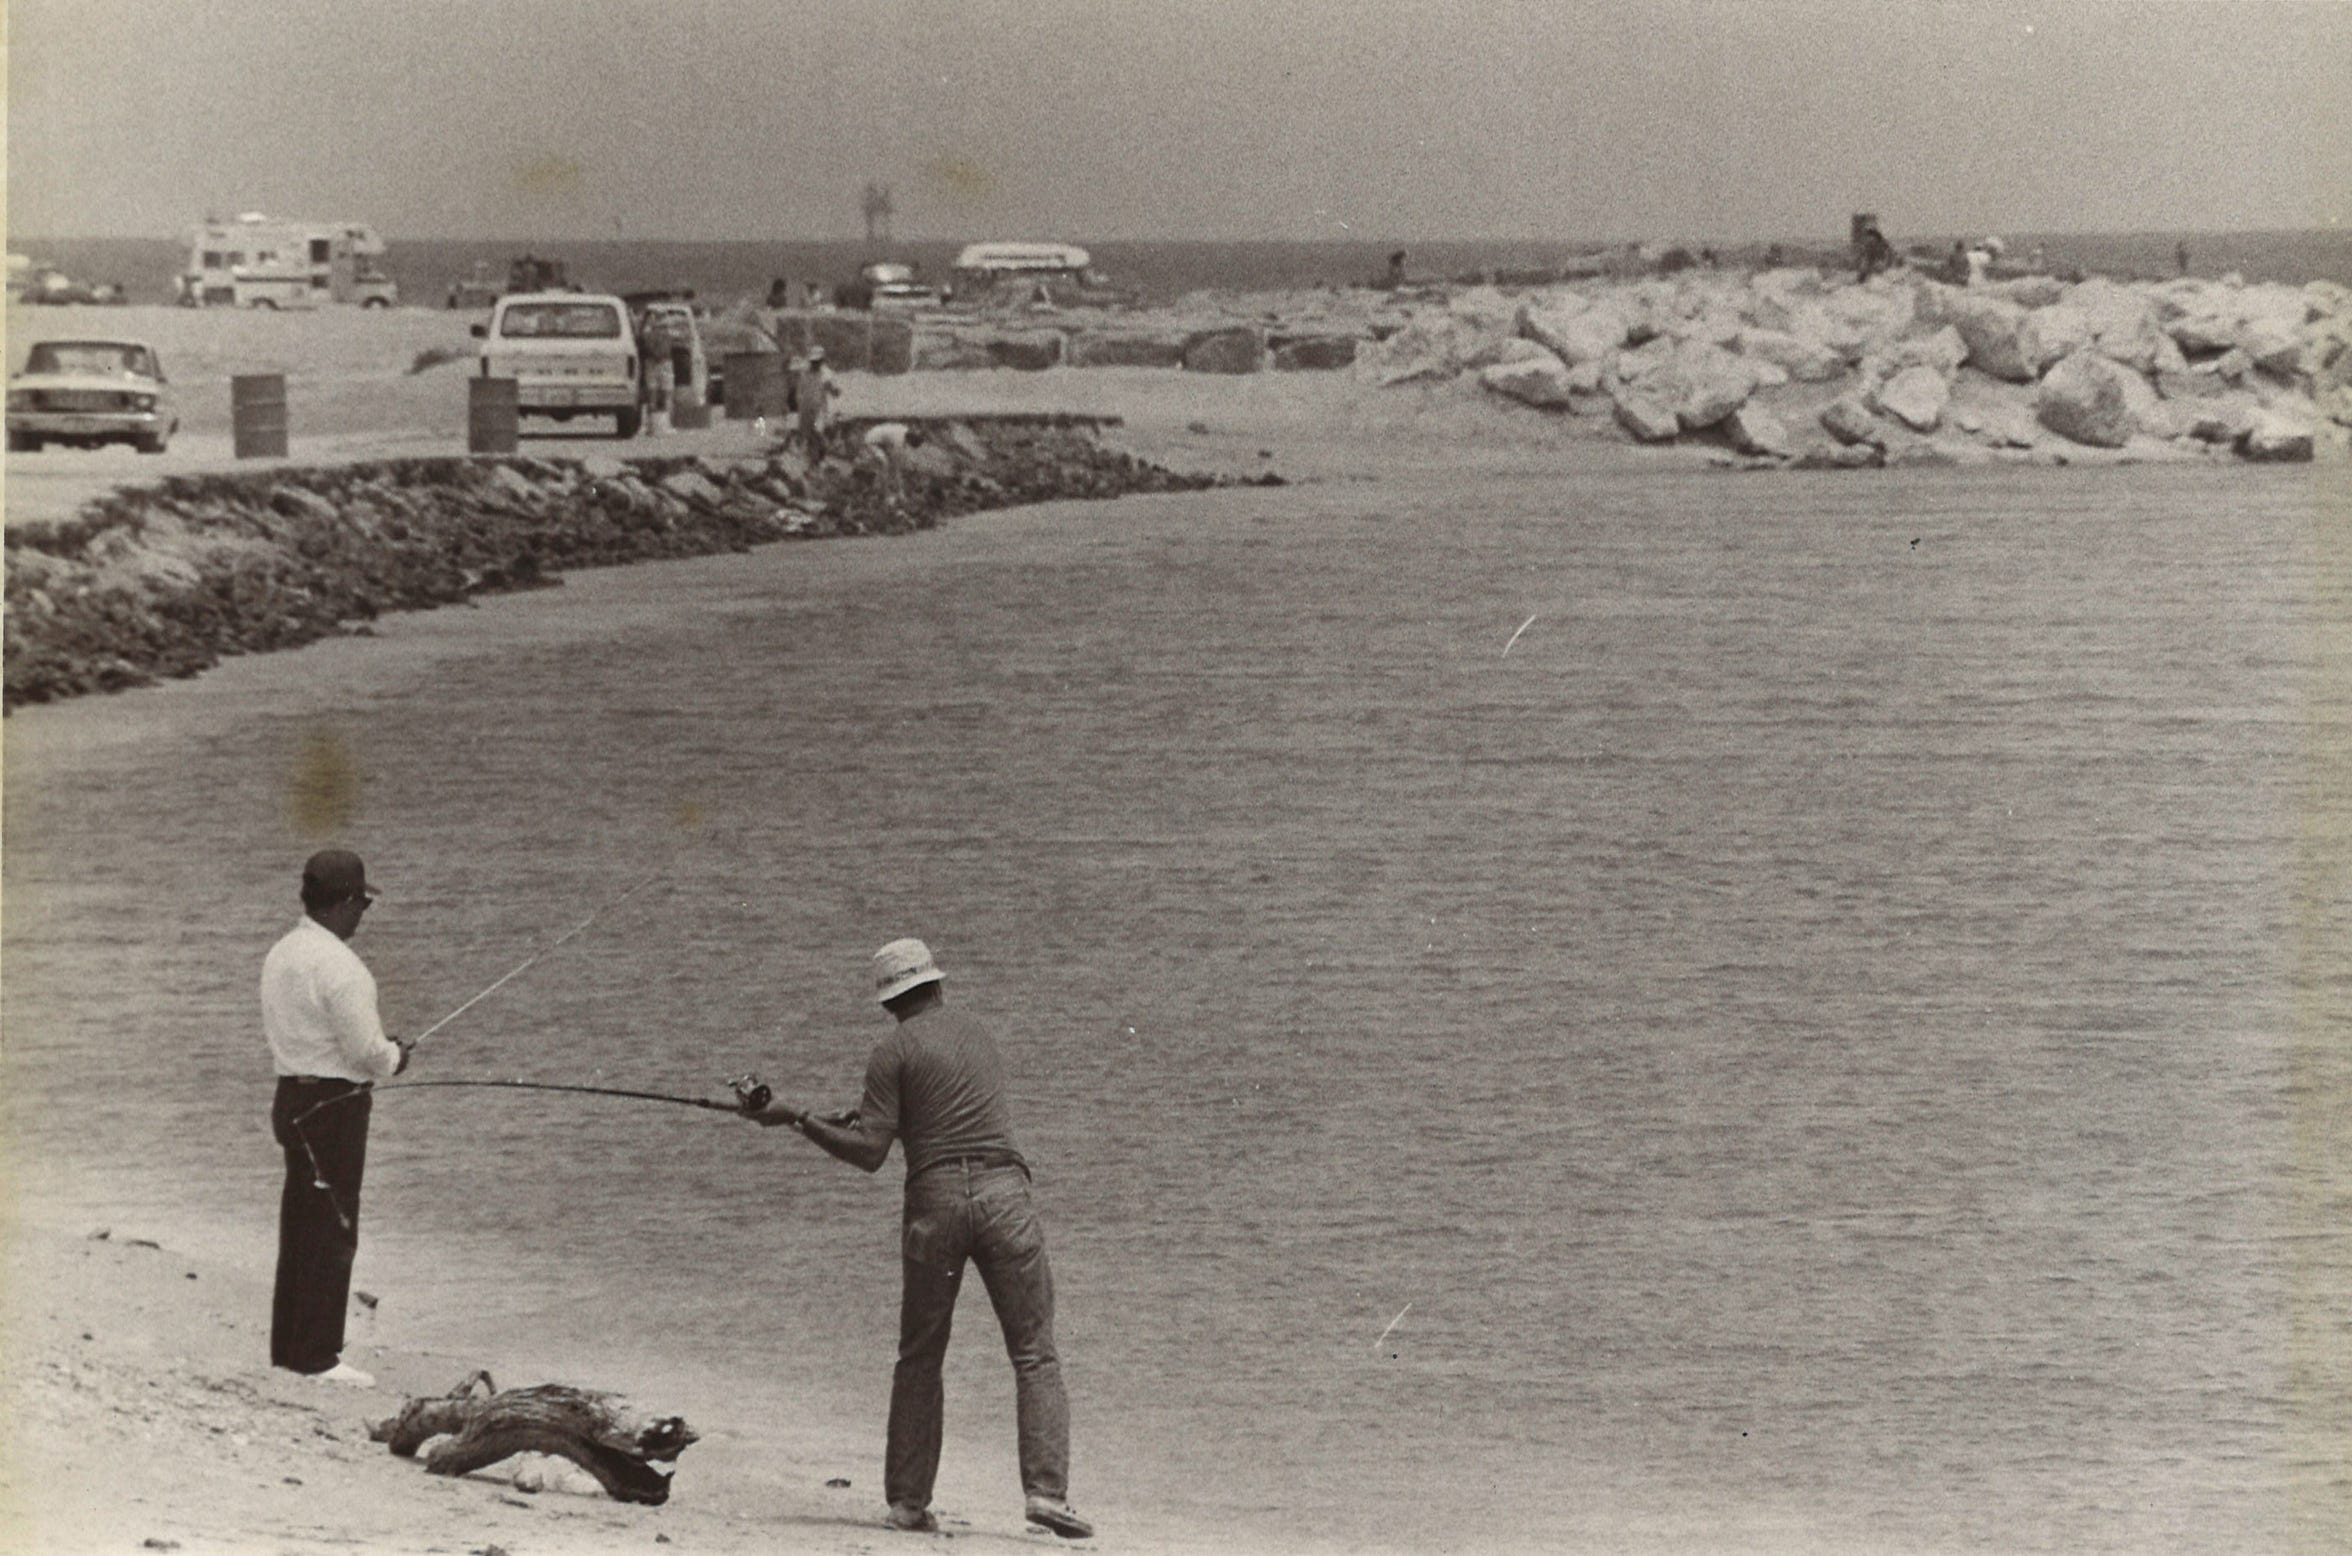 Fishermen at Fish Pass in Mustang Island State Park in August 1972. The pass was dredged in the '70s. Following the Ixtoc oil spill, the Coast Guard filled in the pass to prevent oil from reaching Corpus Christi Bay. Hurricane Allen cleared it back out, but it silted back up and remains closed.